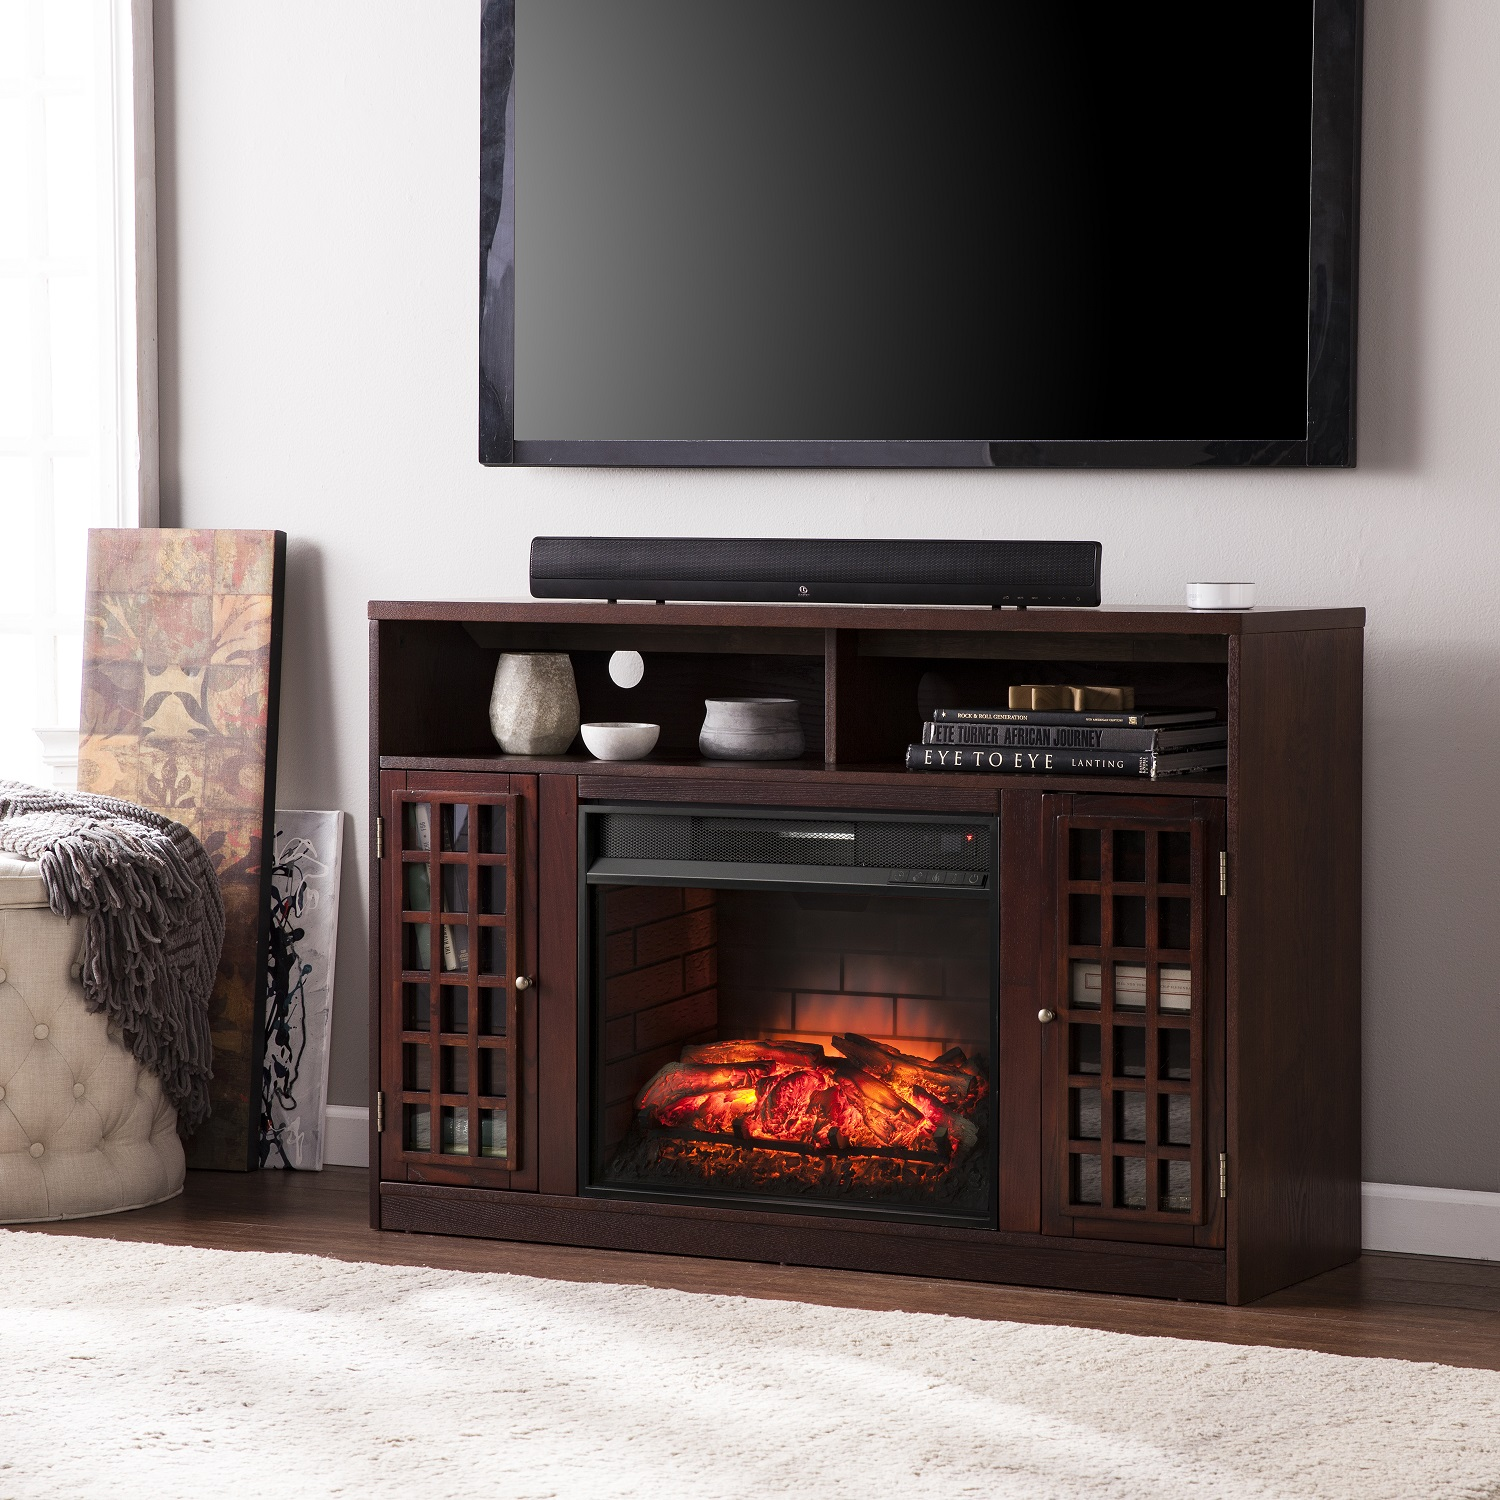 lot for console with modern media costco depot rustic any tv space electric adorable mount home stand entertaining fireplace ikea big furniture